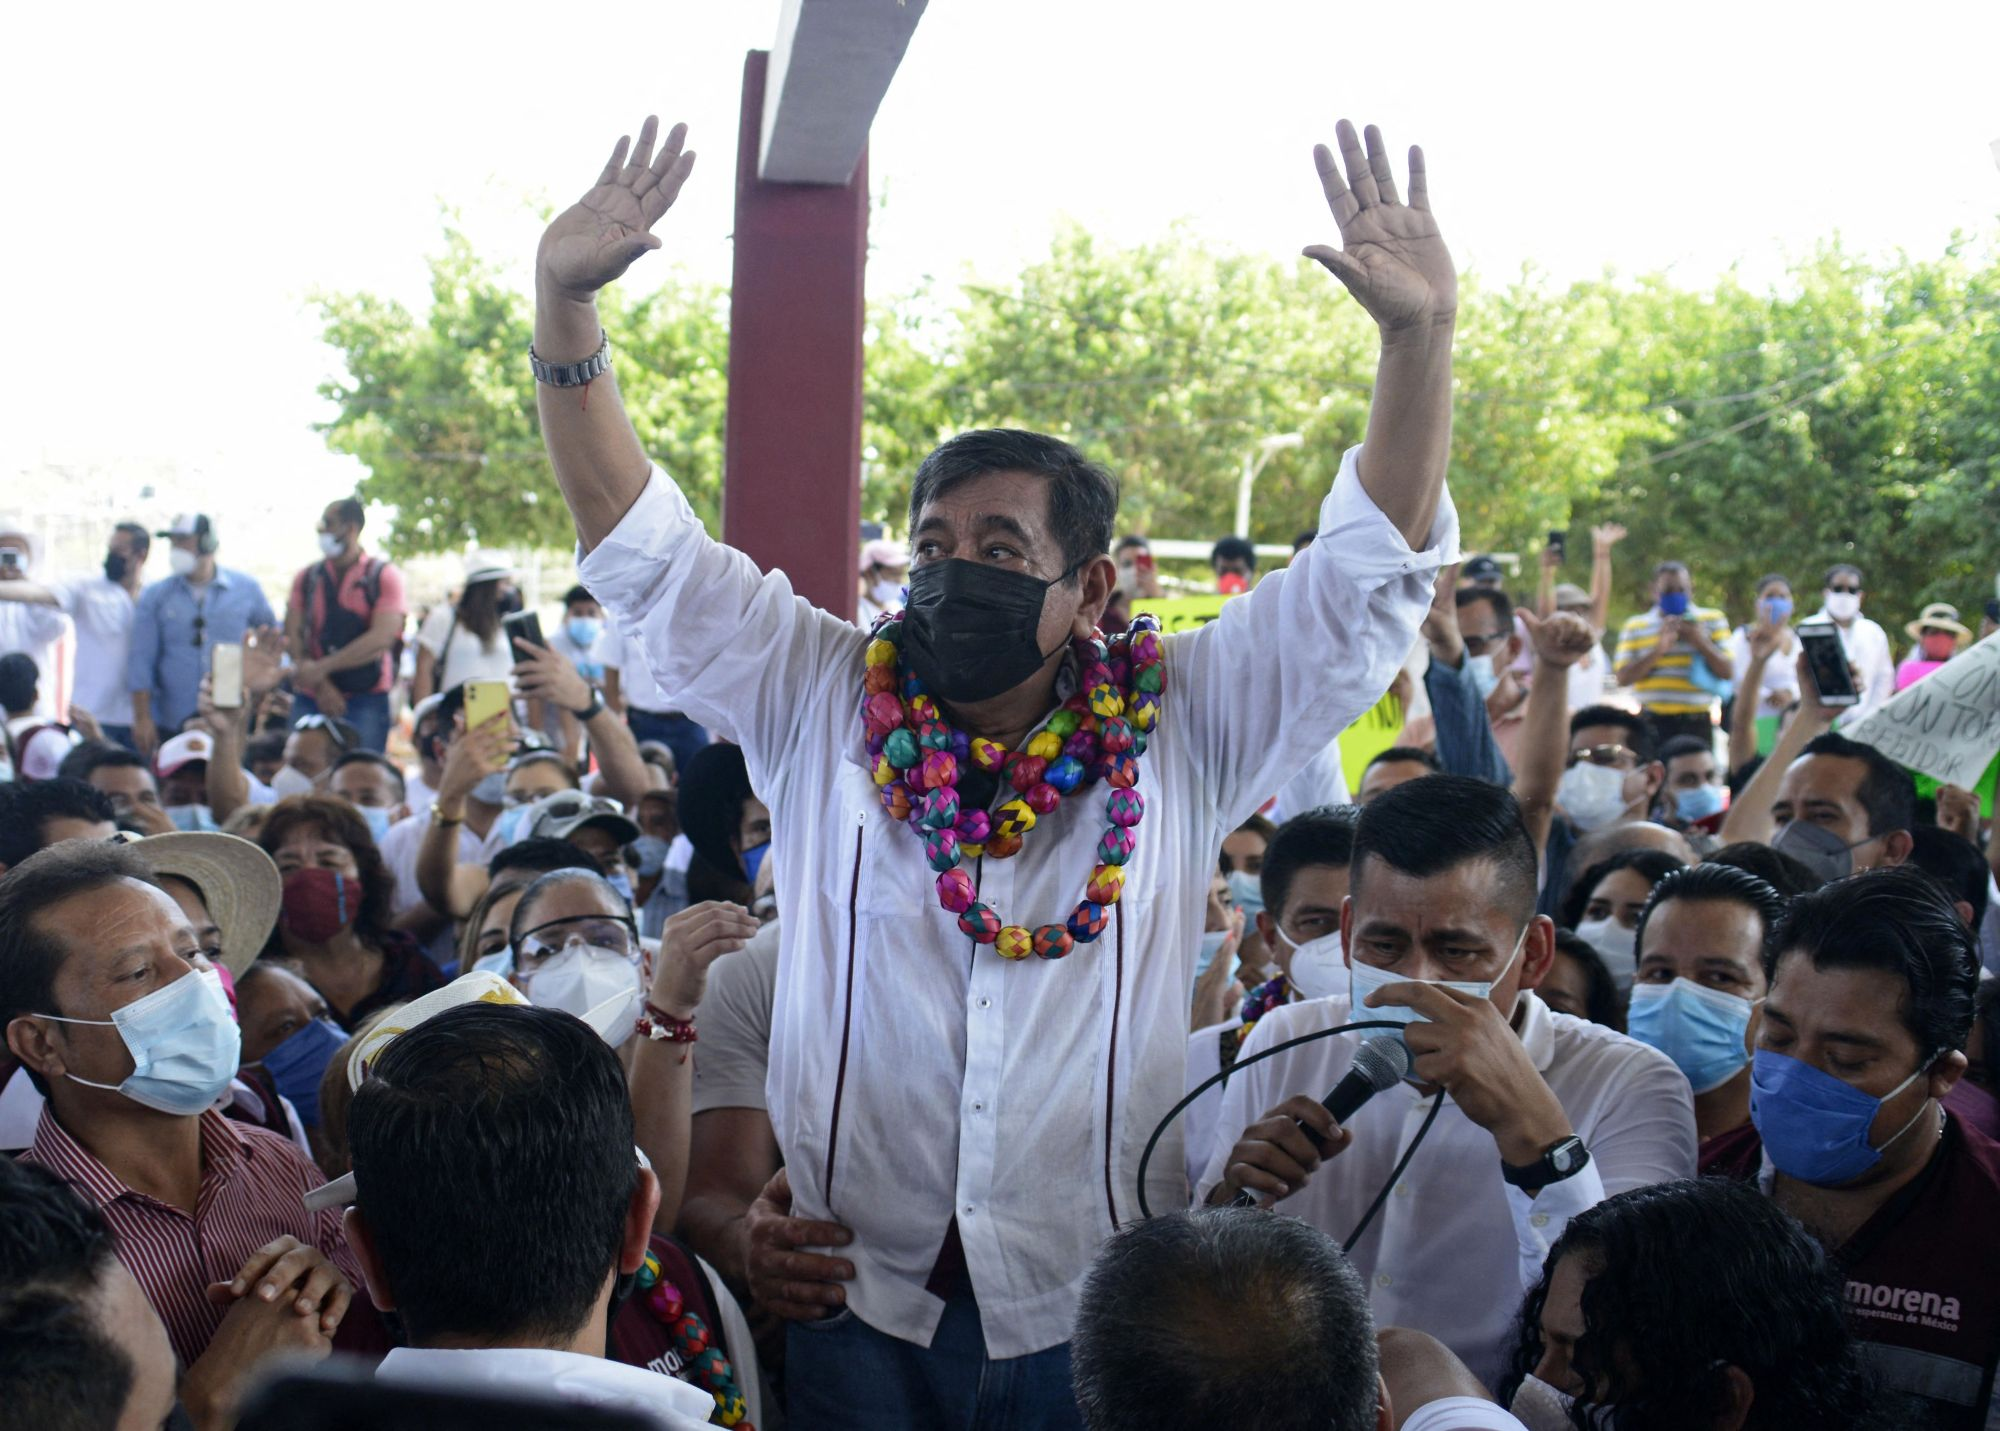 Felix Salgado Macedonio, accused of rape by several women, waves at supporters during the start of his campaign as candidate for governor of the state of Guerrero, in Acapulco, Mexico, on March 13, 2021. The ruling Morean Party announced on March 12, that Salgado was running for governor, prompting several demonstrations by feminist groups. (Francisco ROBLES / AFP via Getty Images)